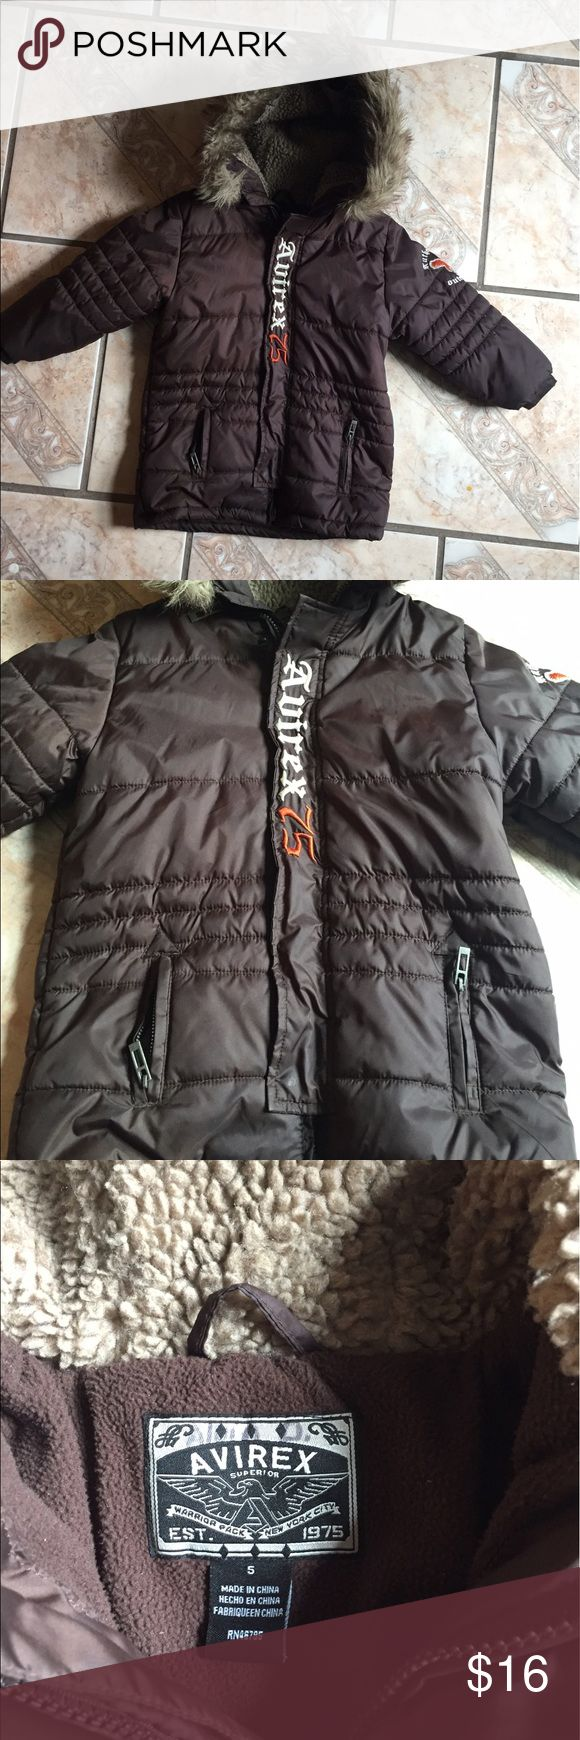 Brown Winter Puffer Jacket This jacket will be perfect to shelter your little love one from the cold winter temps. Has fur around the hood and can be securely closed with zipper and buttons with zipper to close the pockets. Excellent buy before the cold season comes in! Jackets & Coats Puffers